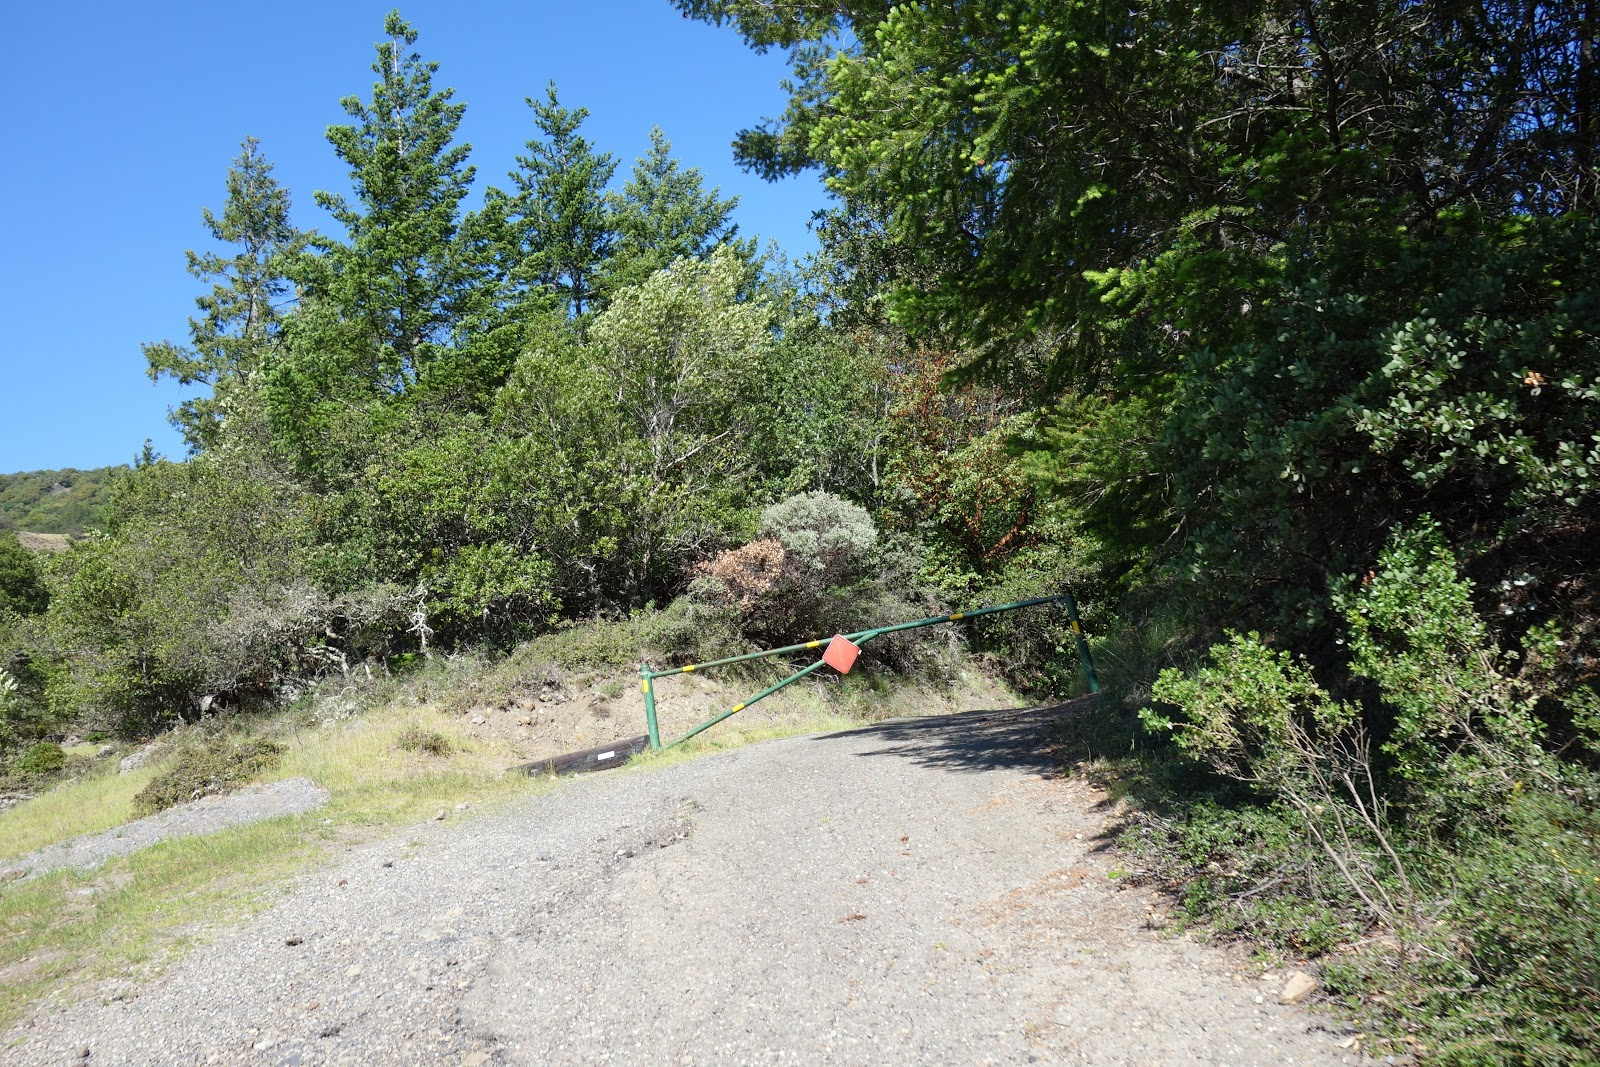 Climbing Bald Mountain by bike - gate at end of gravel section